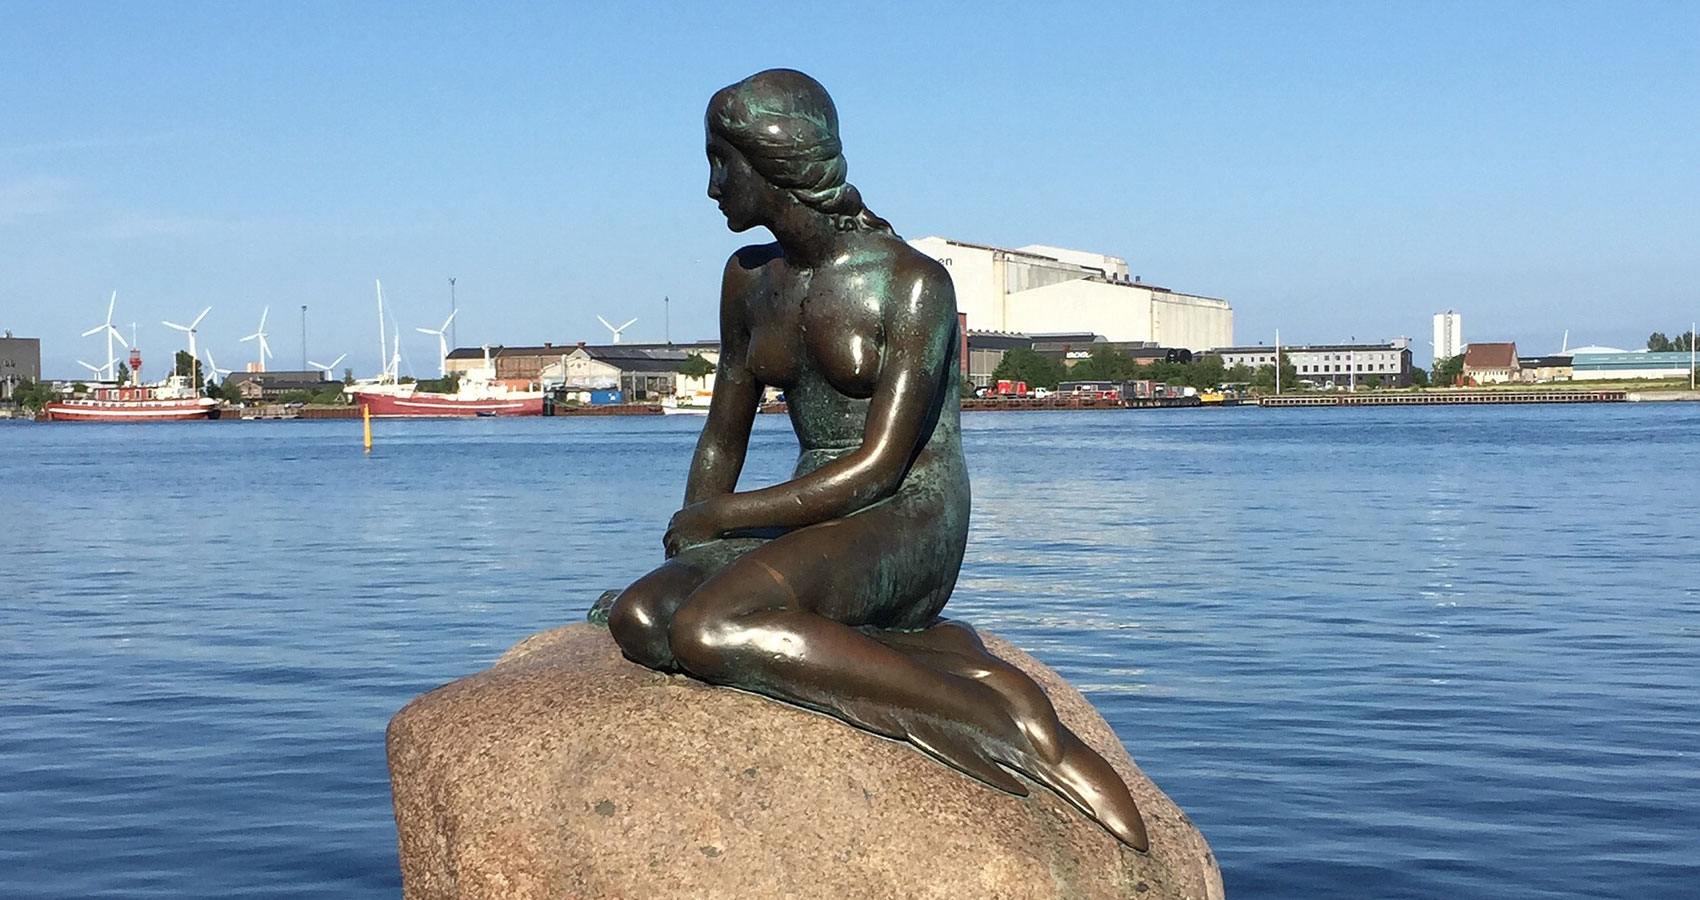 Little Mermaid, a poem written by Nobby66 at Spillwords.com